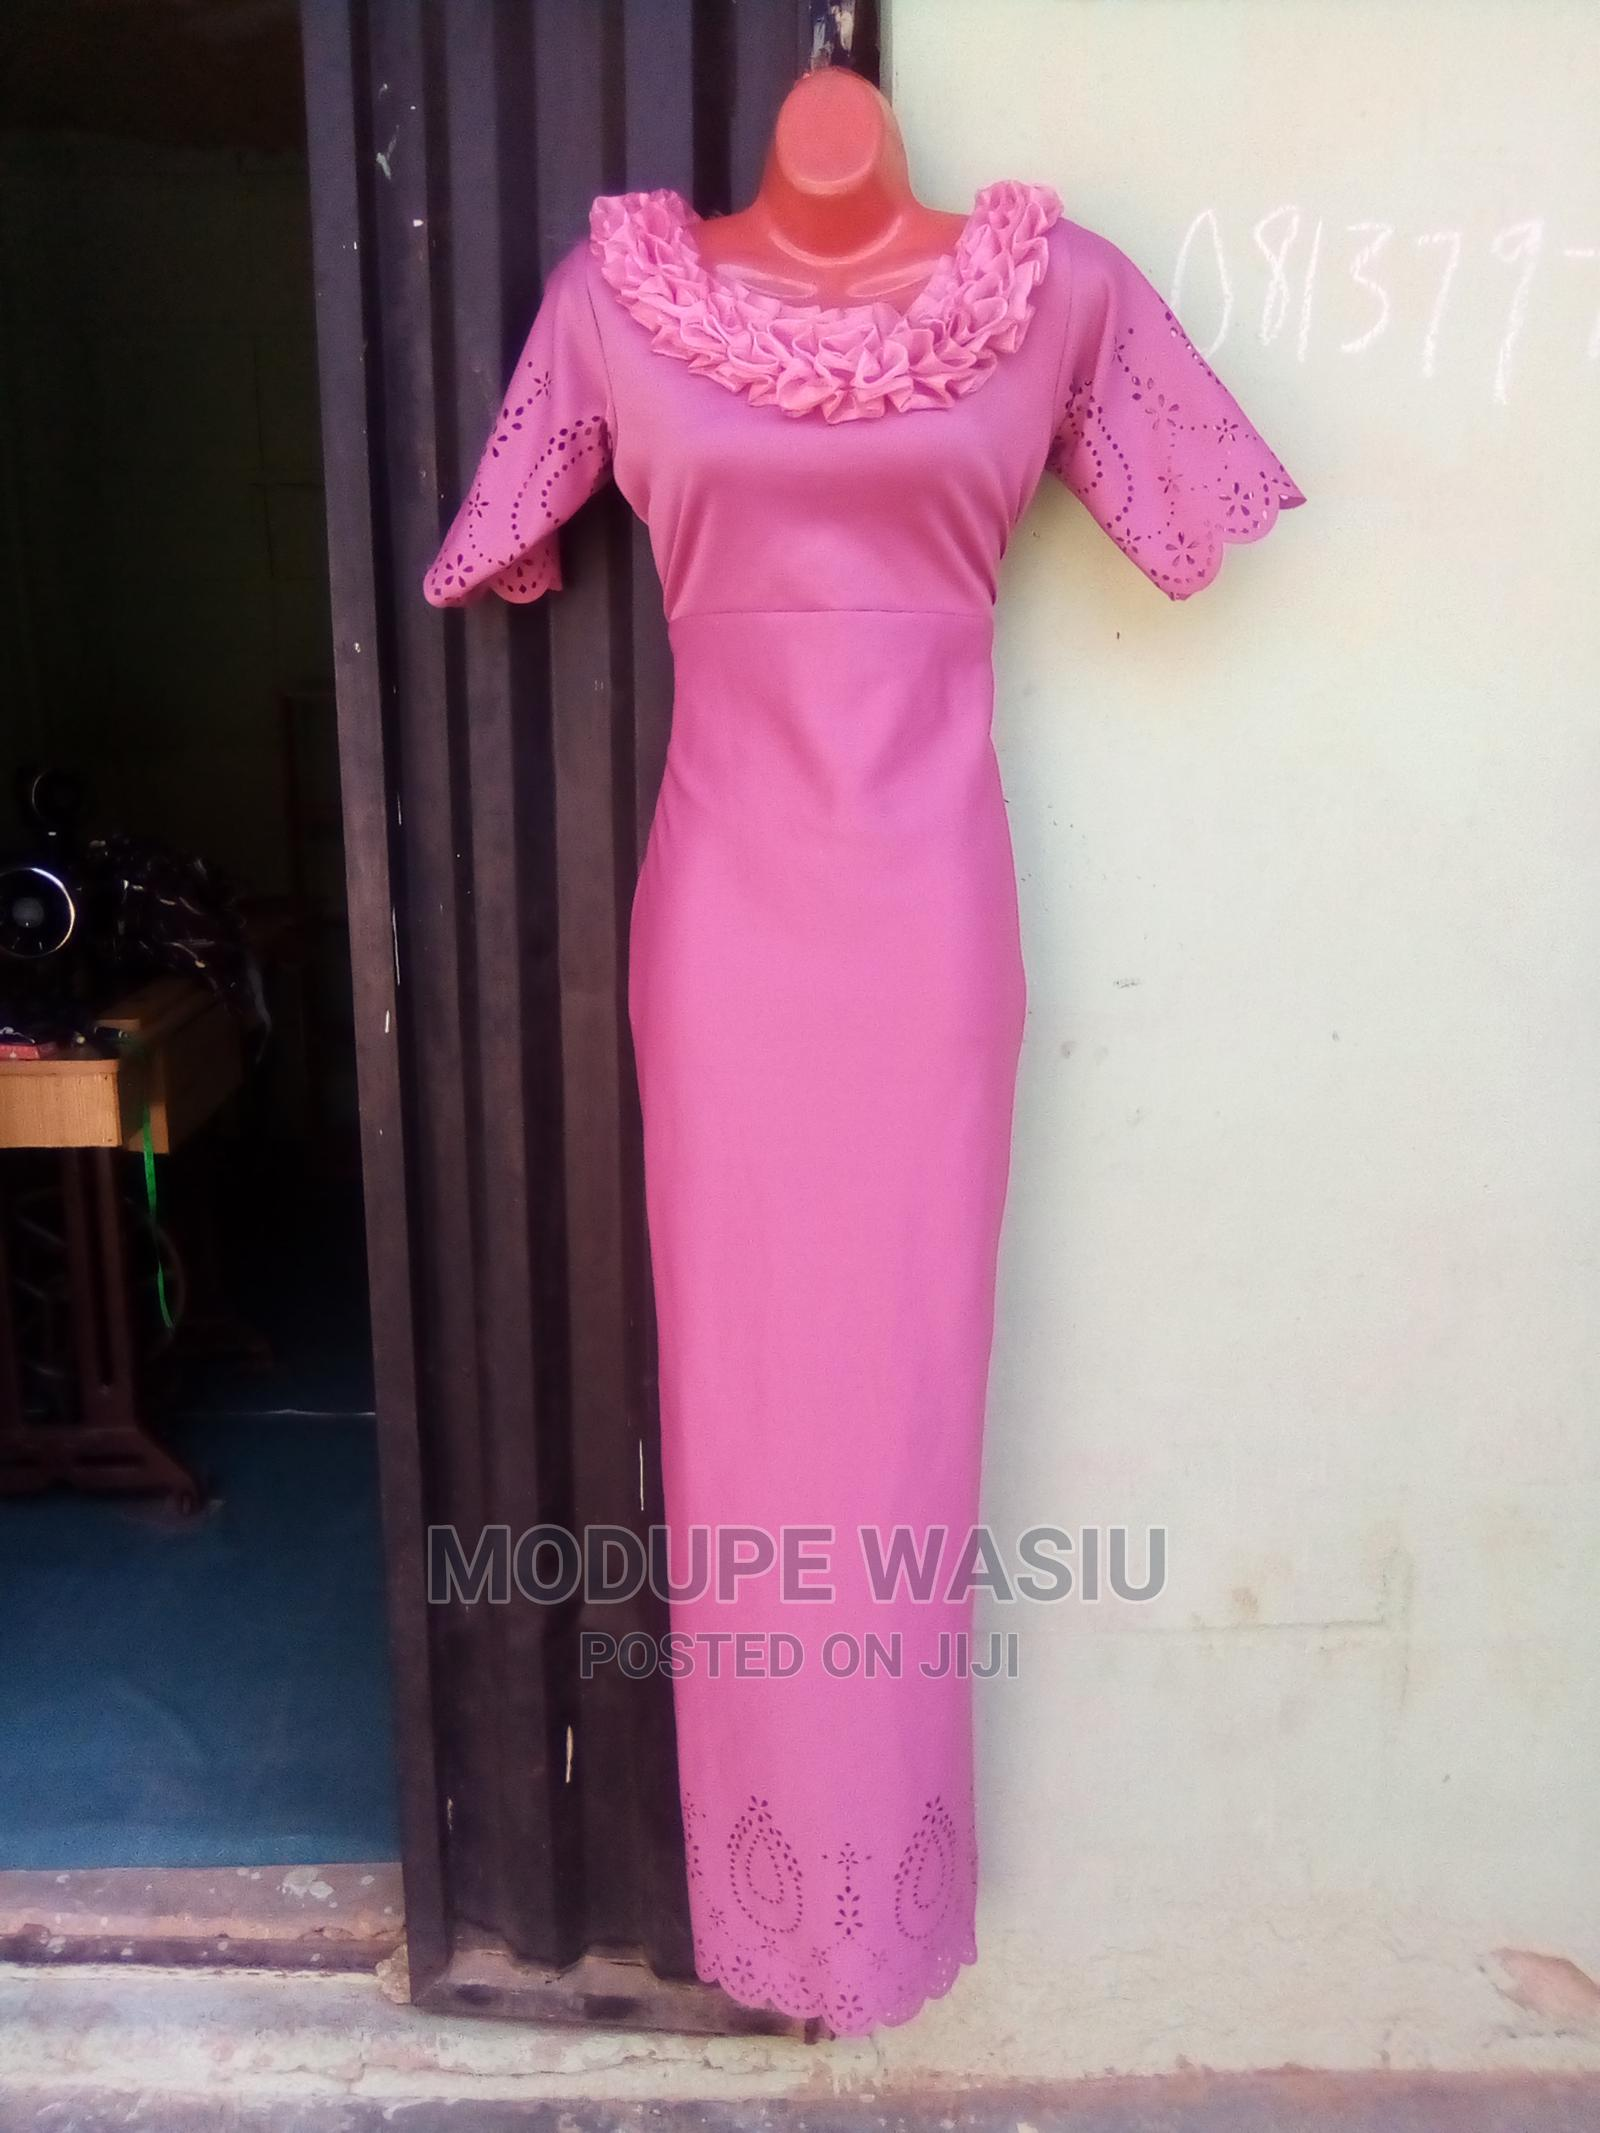 Archive: Female Dress (Gown)